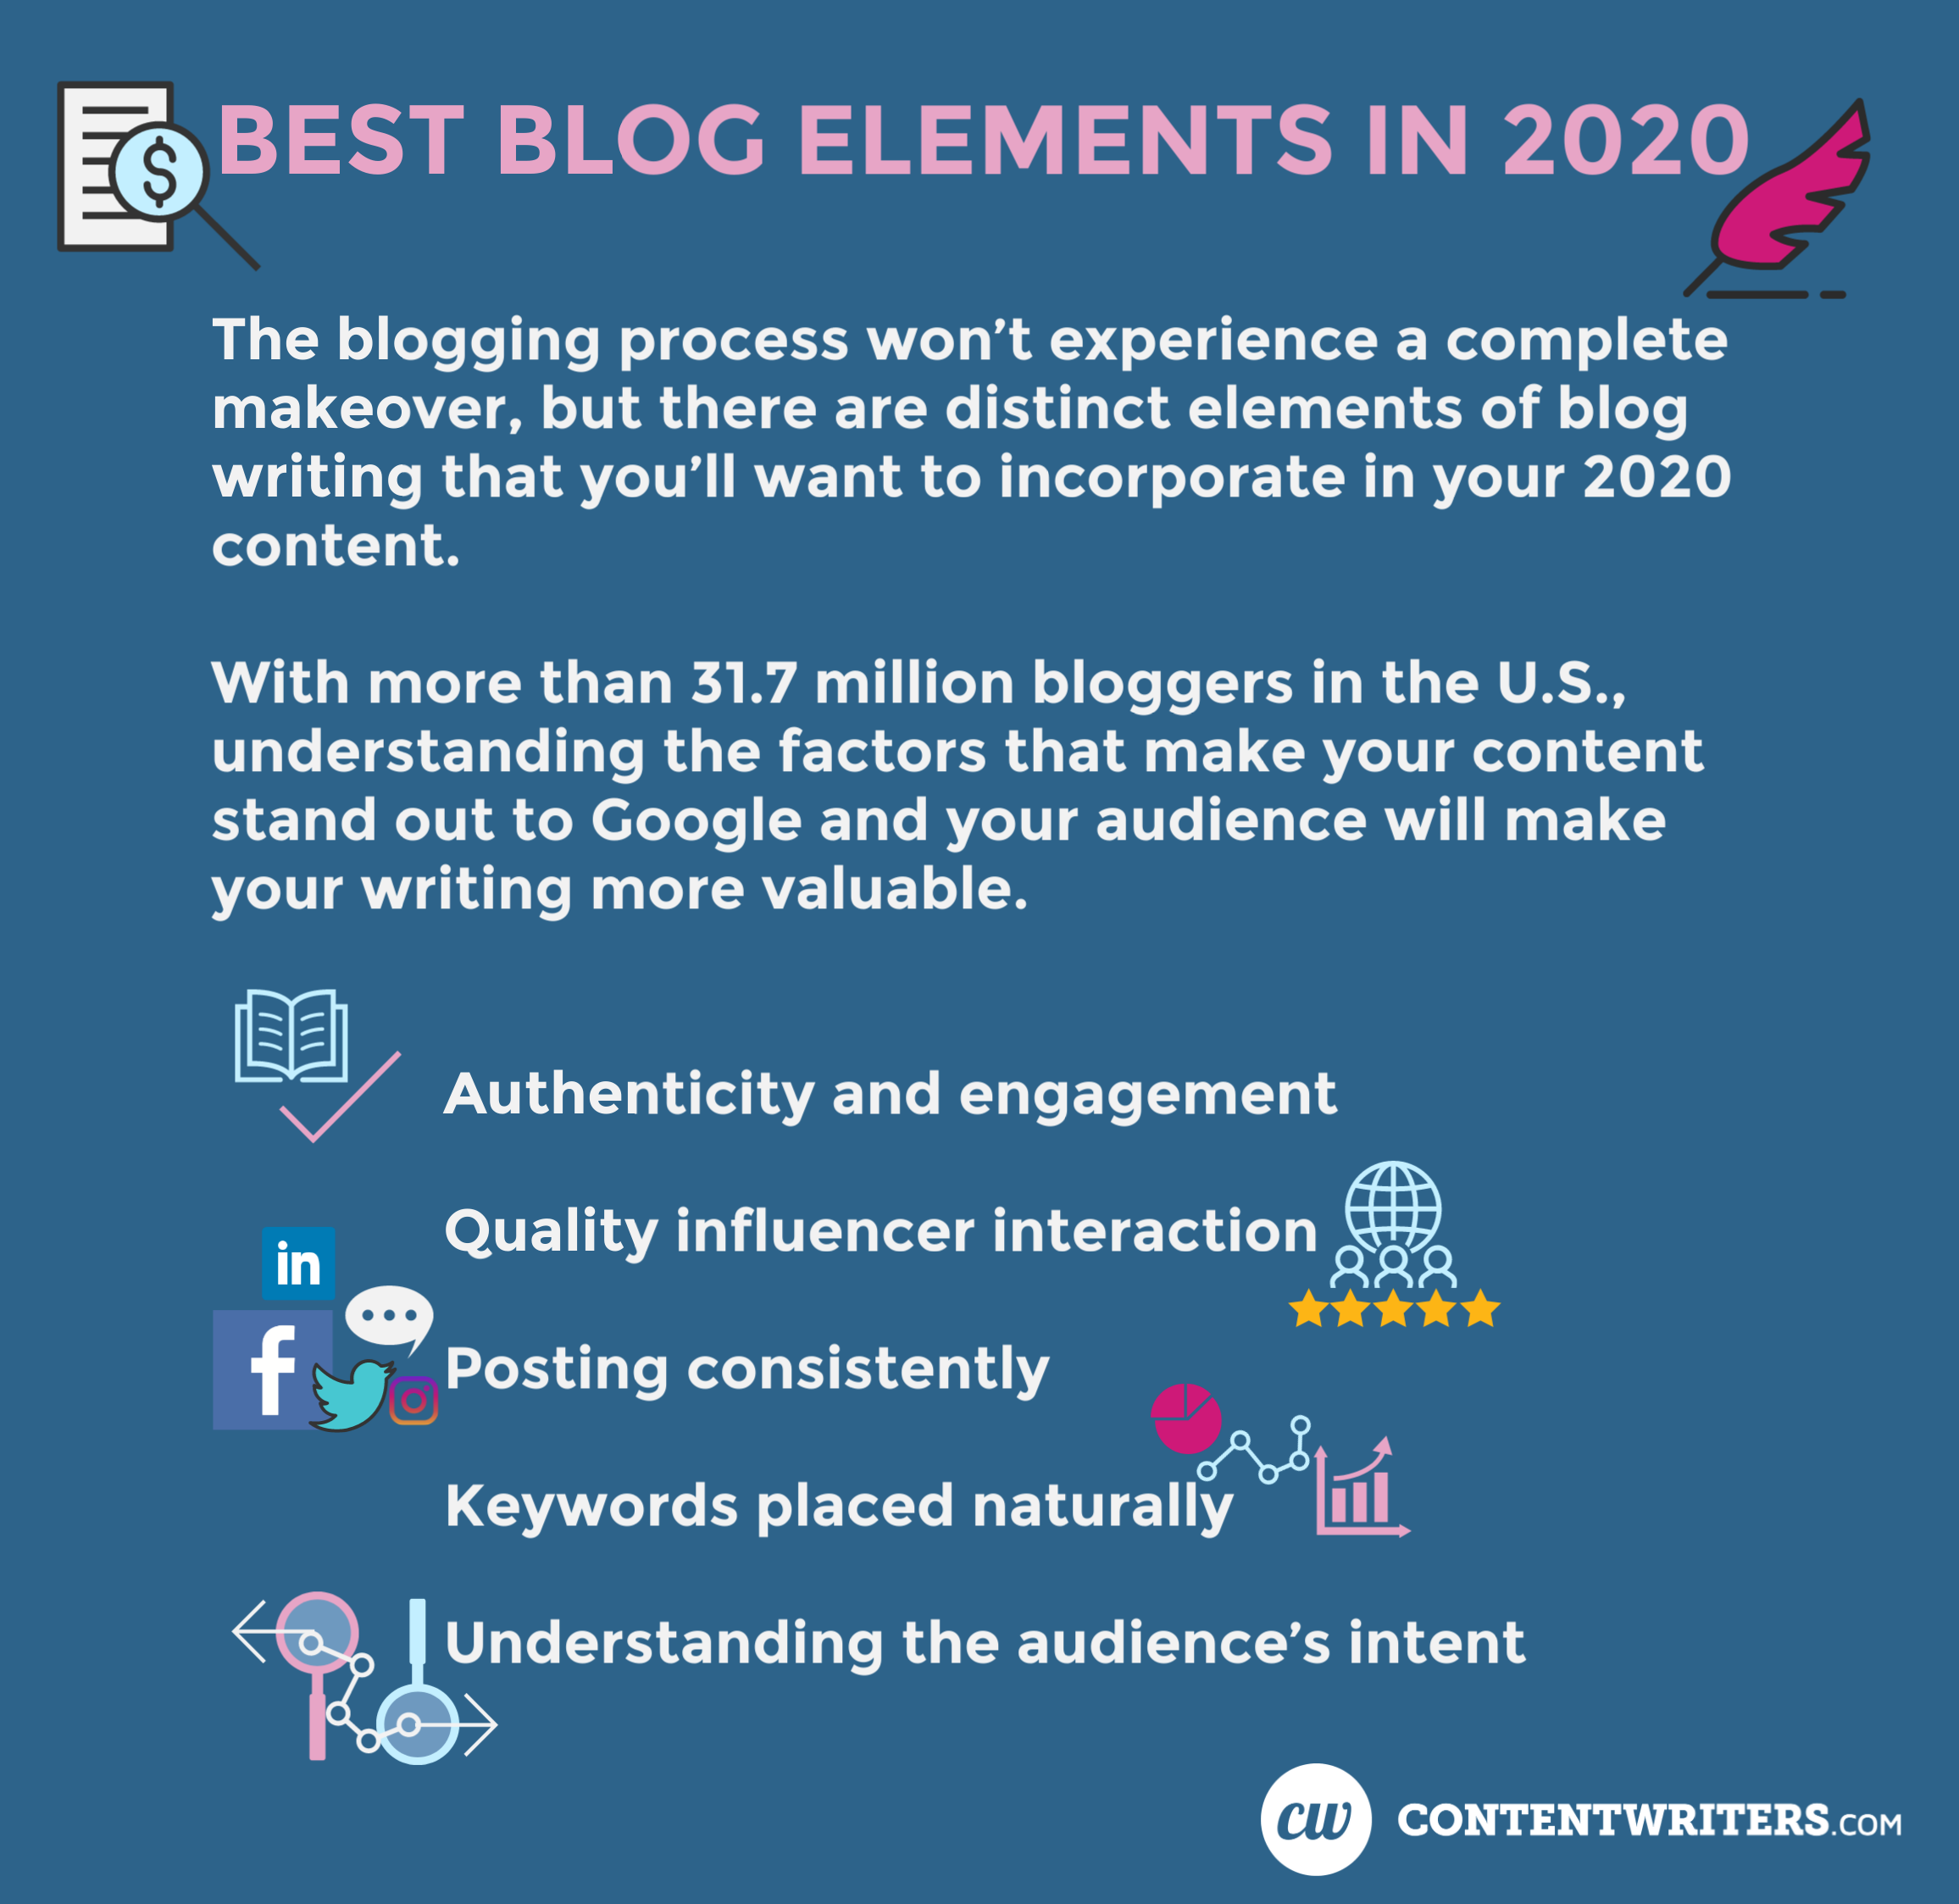 Best Blog Elements in 2020  The blogging process won't experience a complete makeover, but there are distinct elements of blog writing that you'll want to incorporate in your 2020 content.   With more than 31.7 million bloggers in the U.S., understanding the factors that make your content stand out to Google and your audience will make your writing more valuable.  Authenticity and engagement Quality influencer interaction Posting consistently Keywords placed naturally Understanding the audience's intent